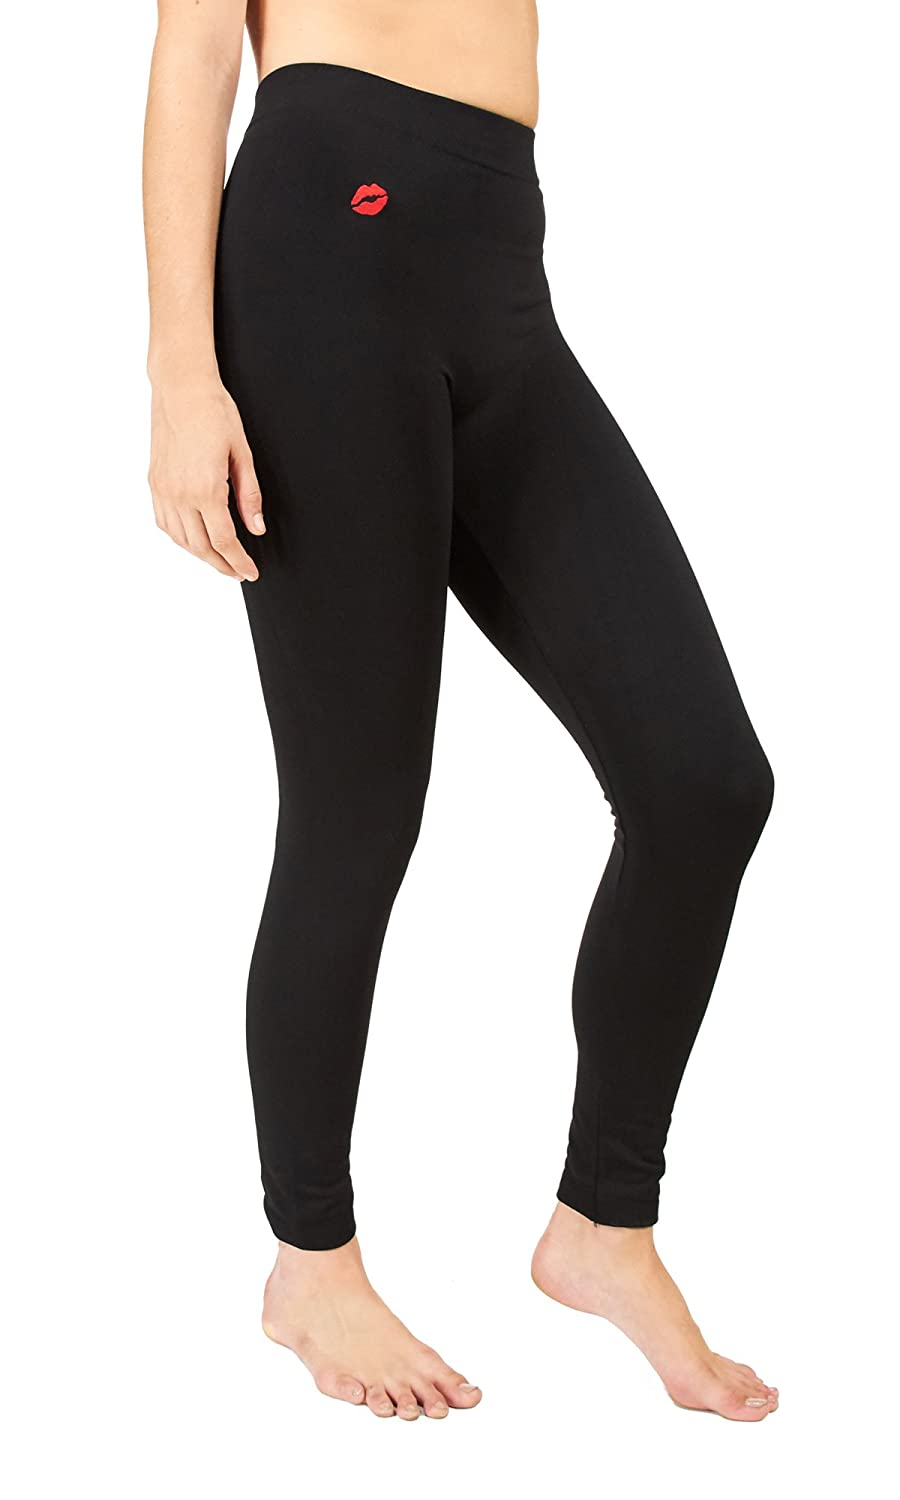 60056a3cd10b0d Amazon.com: Marilyn Monroe Womens Ladies Fleece Lined Footless Black  Leggings Lip Embroidery Size S/M: Shoes